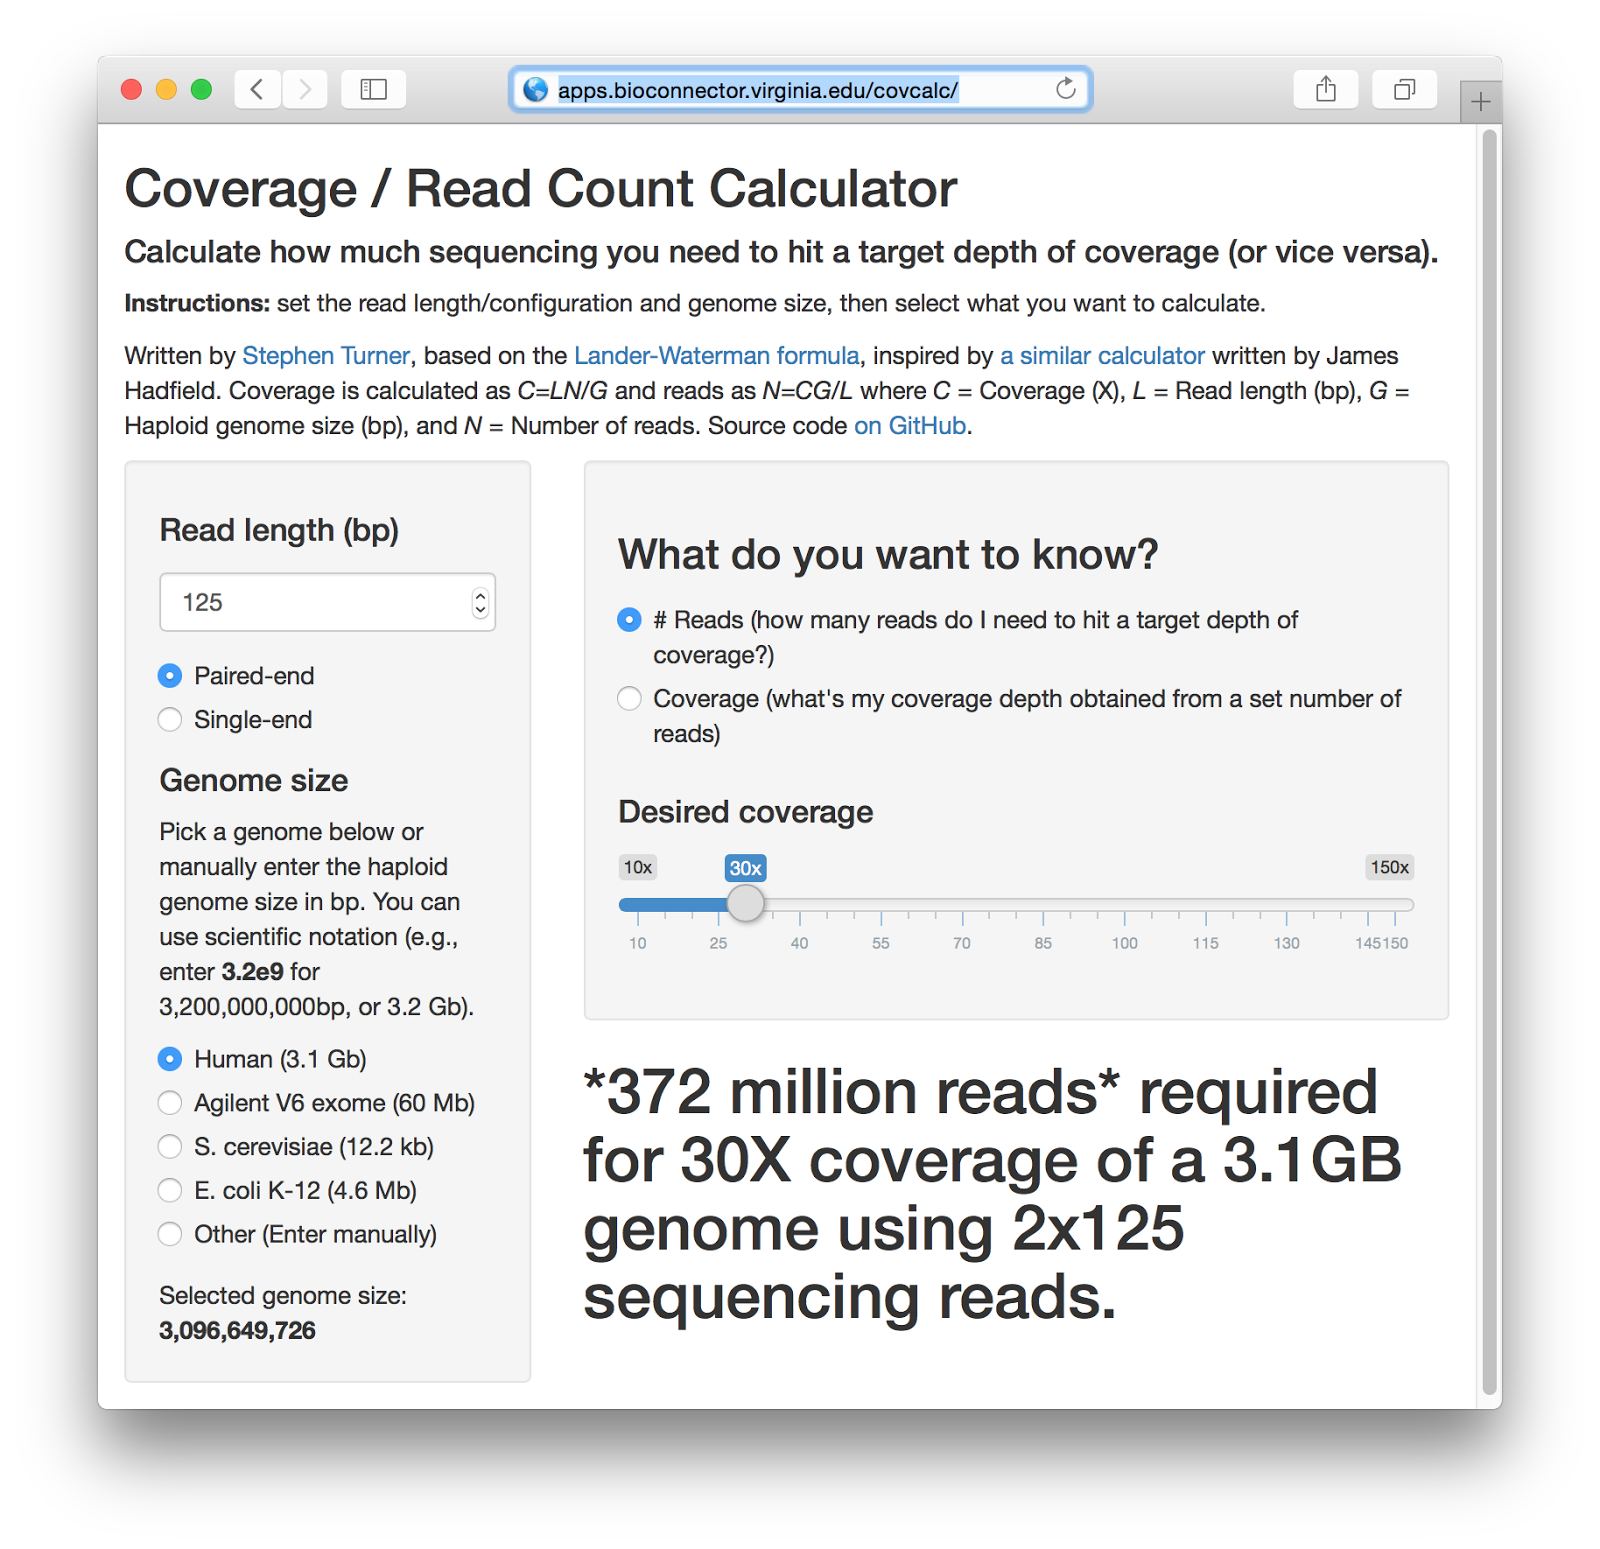 Covcalc Shiny App For Calculating Coverage Depth Or Read Counts For Sequencing Experiments